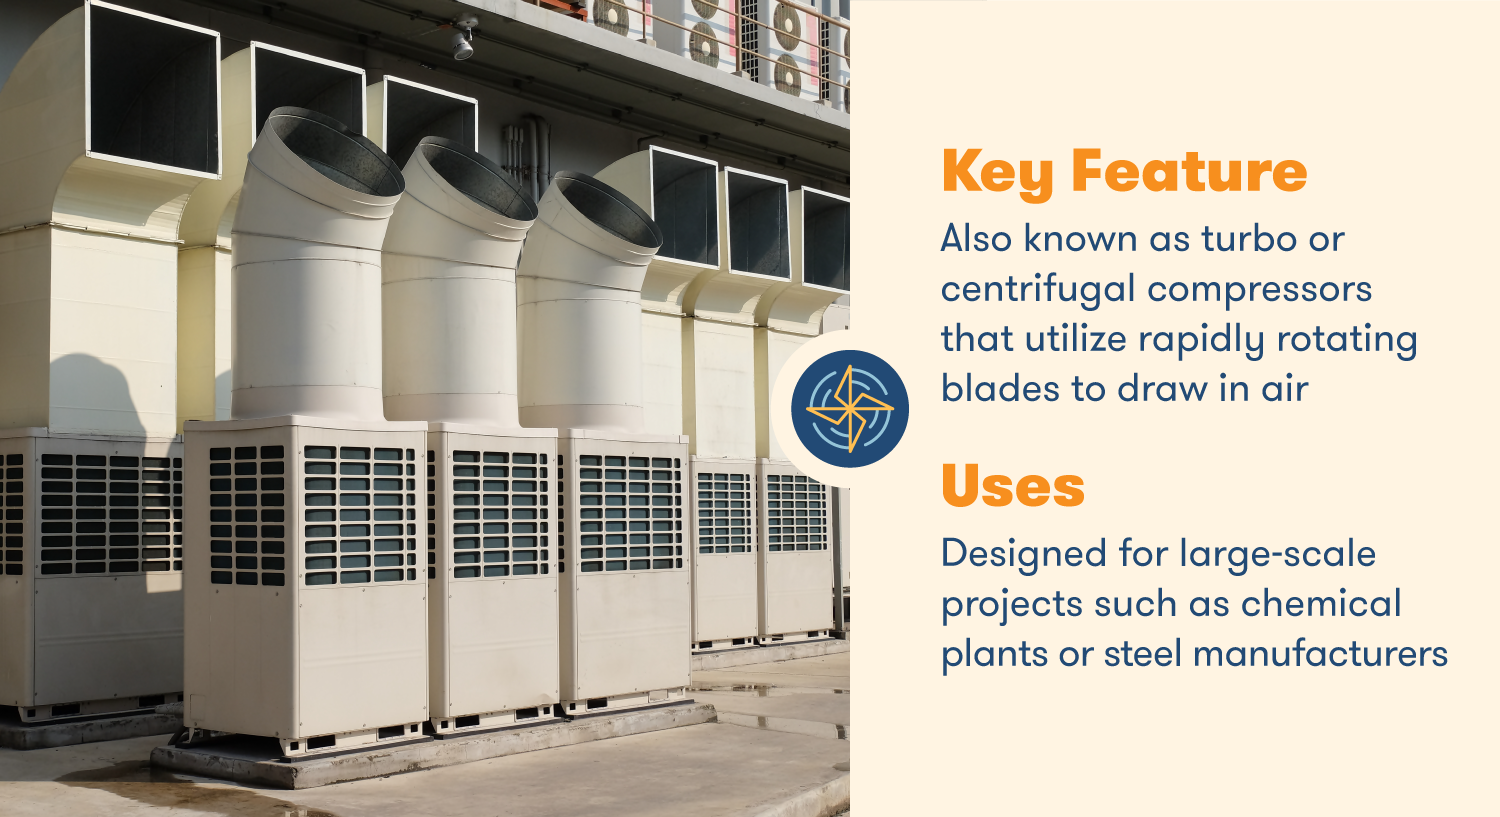 Dynamic compressors use rapidly rotating blades to draw in air in large-scale construction projects.